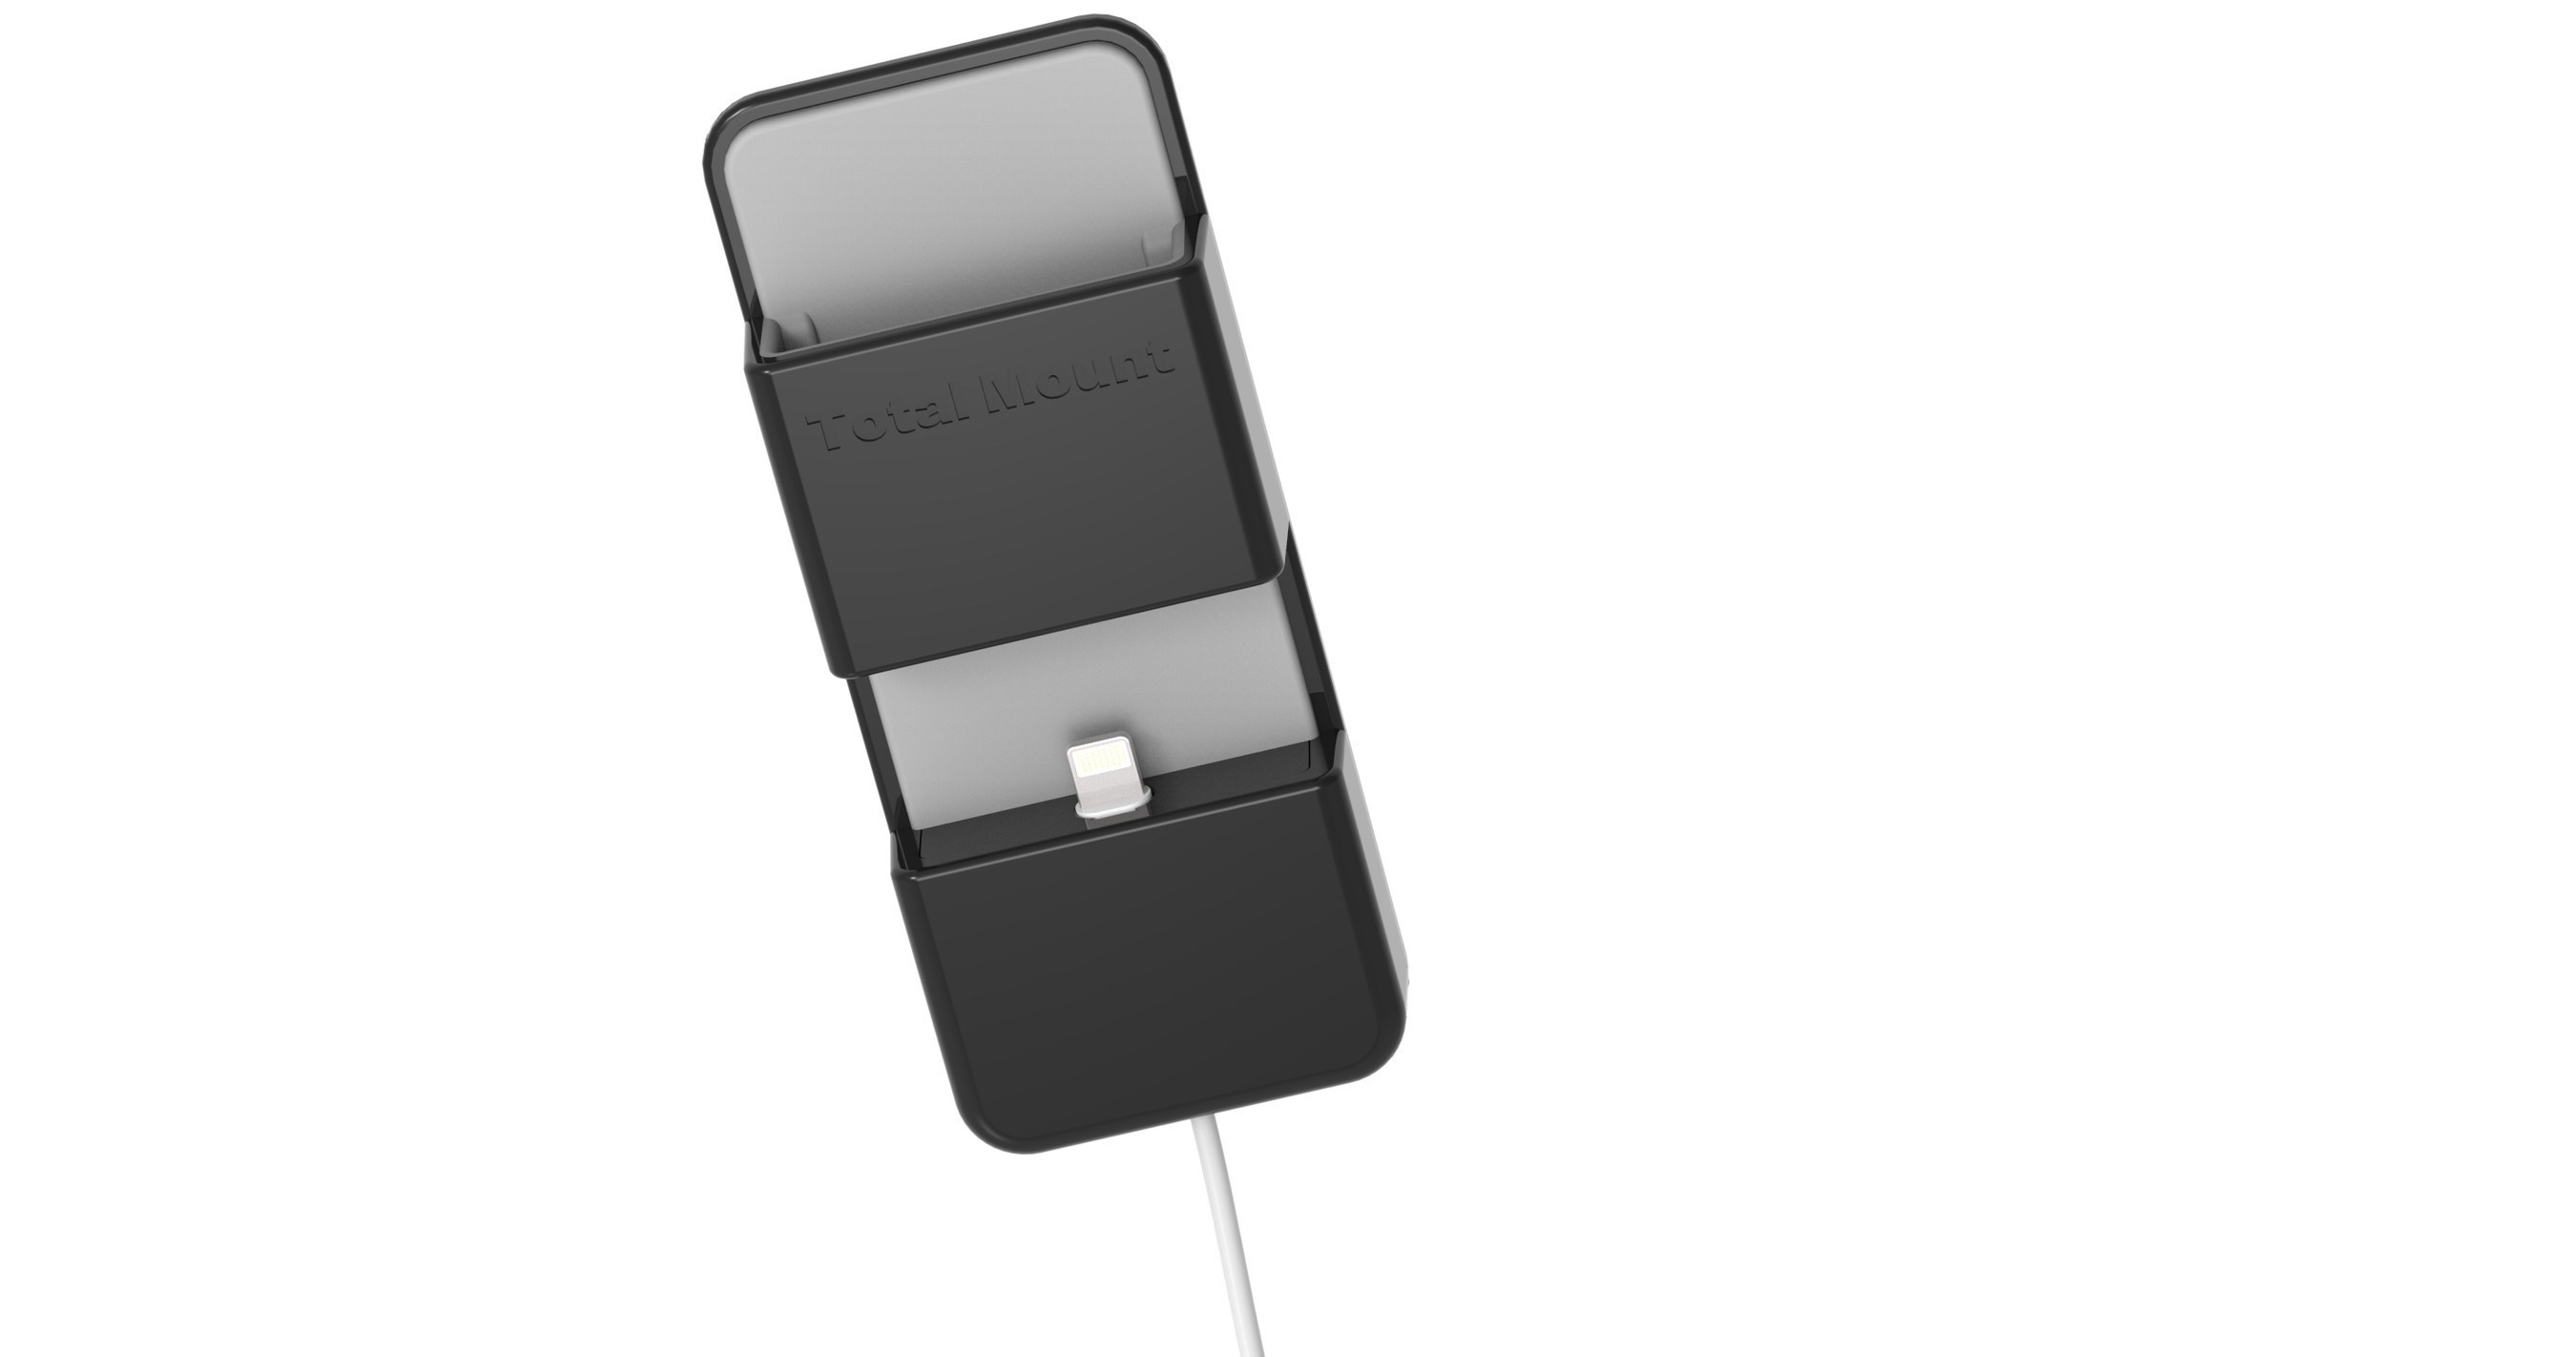 TotalMount Apple TV Remote Holder, which is included in the TotalMount Pro bundle sold in Apple stores worldwide.